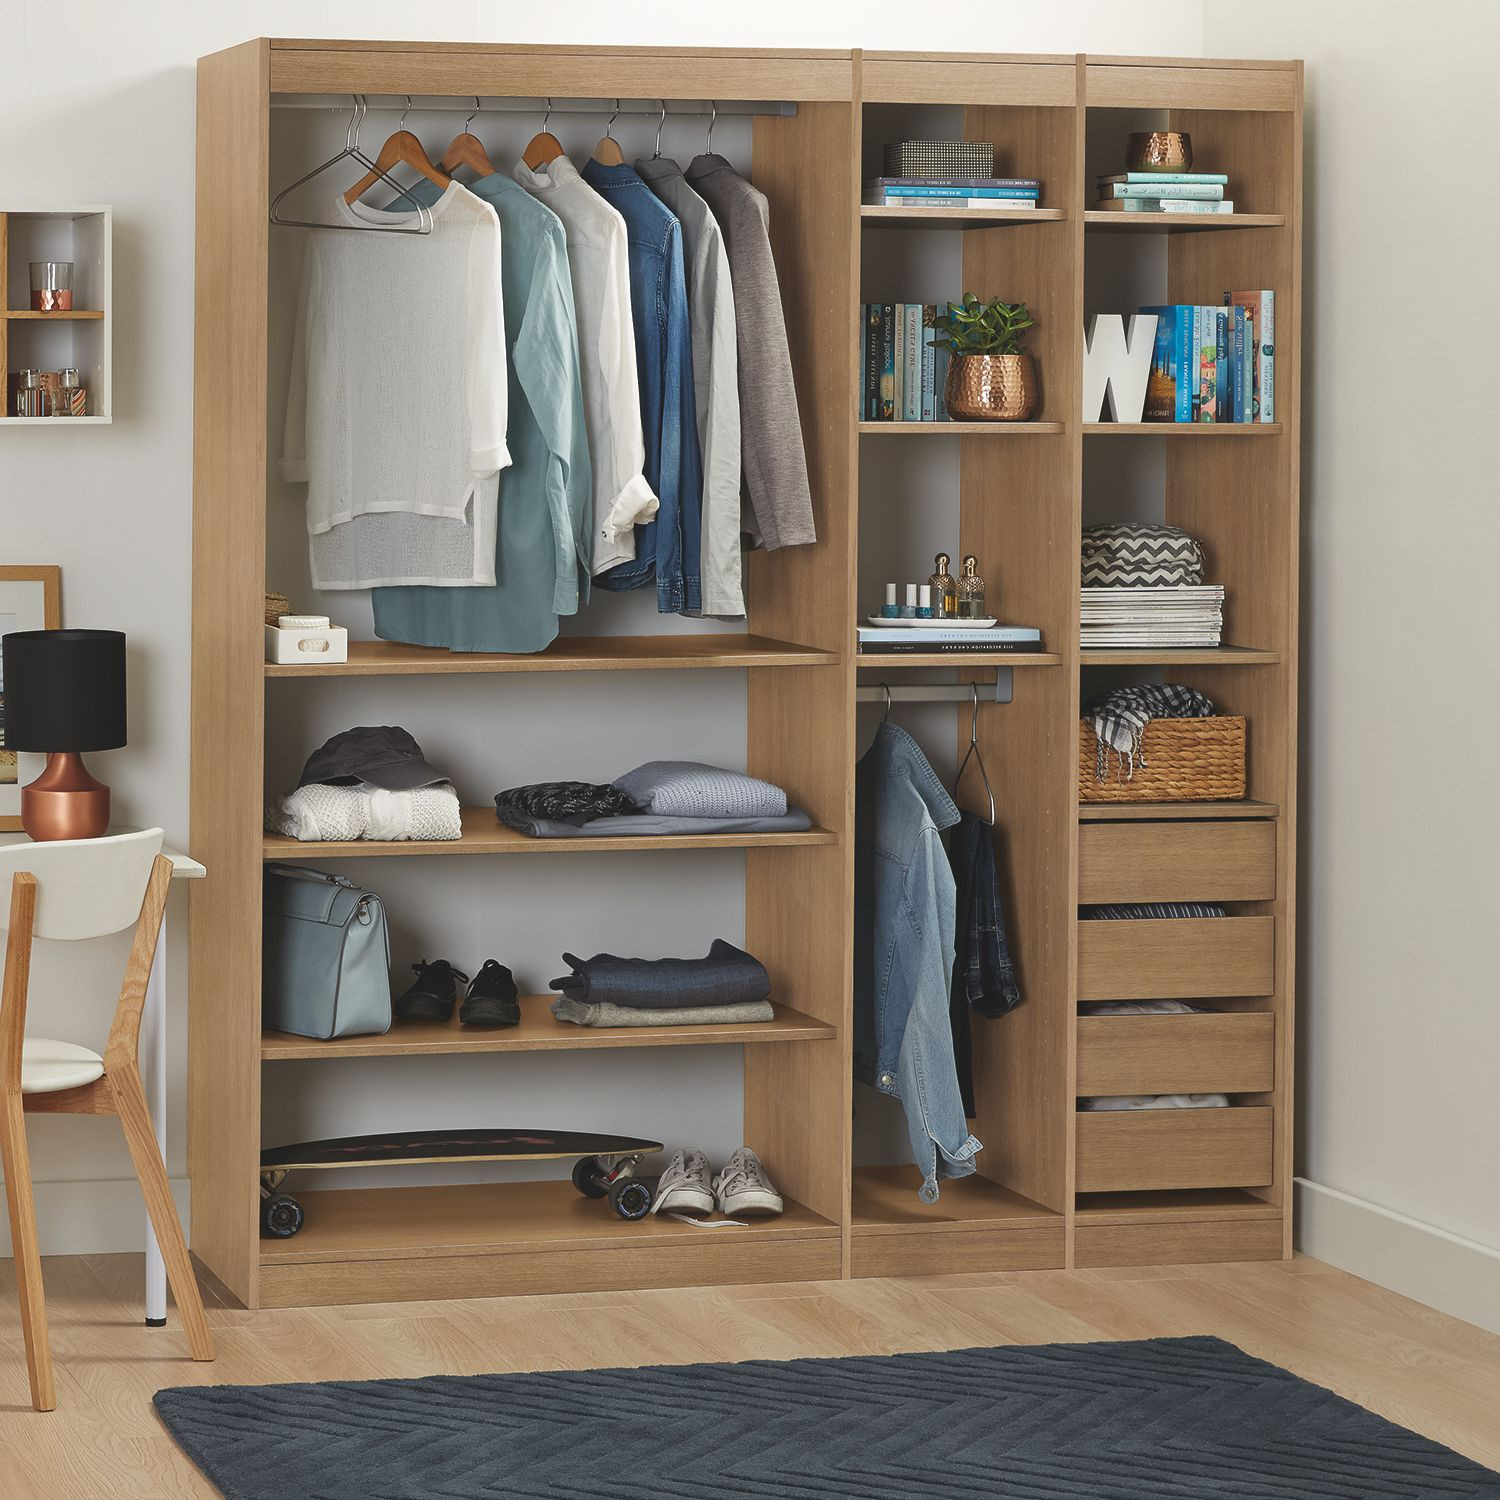 Best ideas about Bedroom Storage Cabinets . Save or Pin Bedroom Wardrobe Storage Cabinet bedroom wardrobe systems Now.